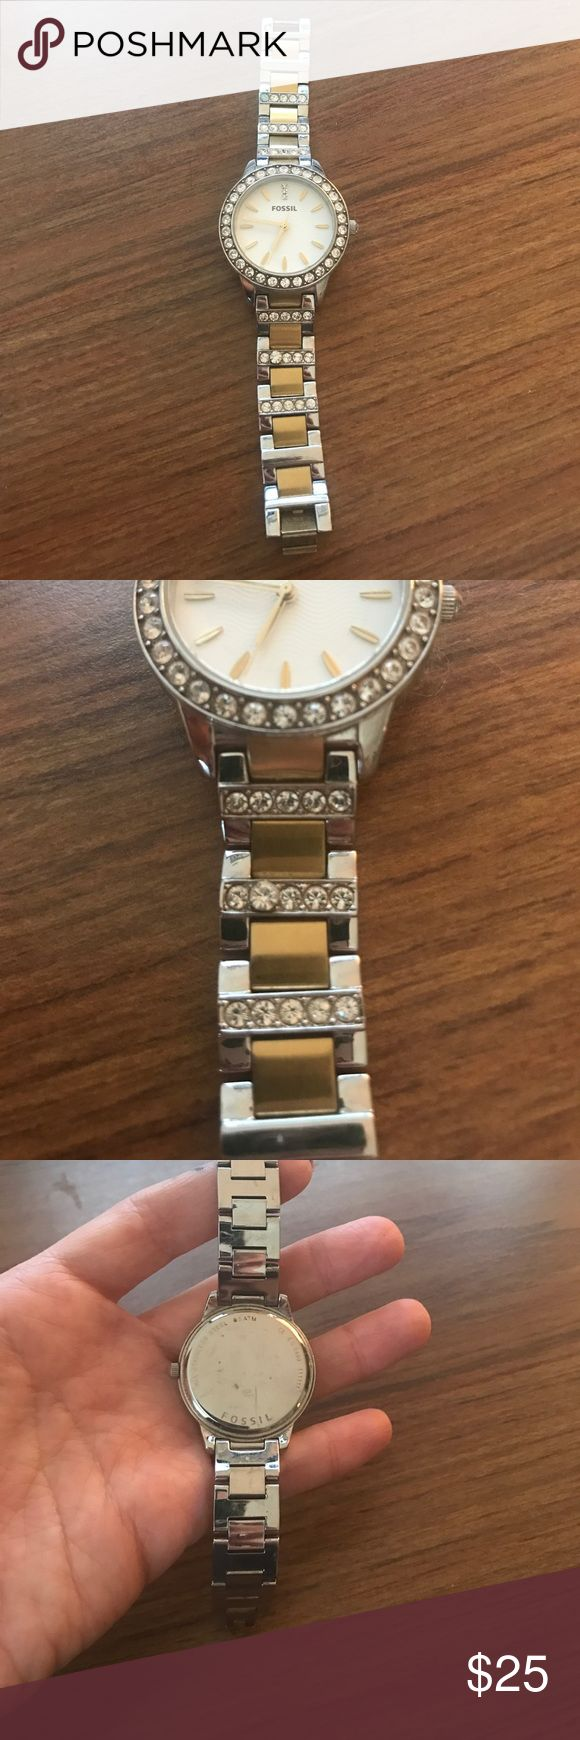 Fossil watch women's Works perfect but does need new watch battery. Also one stone on band appears bigger than the others, slightly( in 2nd pic) fair condition. Gold and silver Fossil Accessories Watches